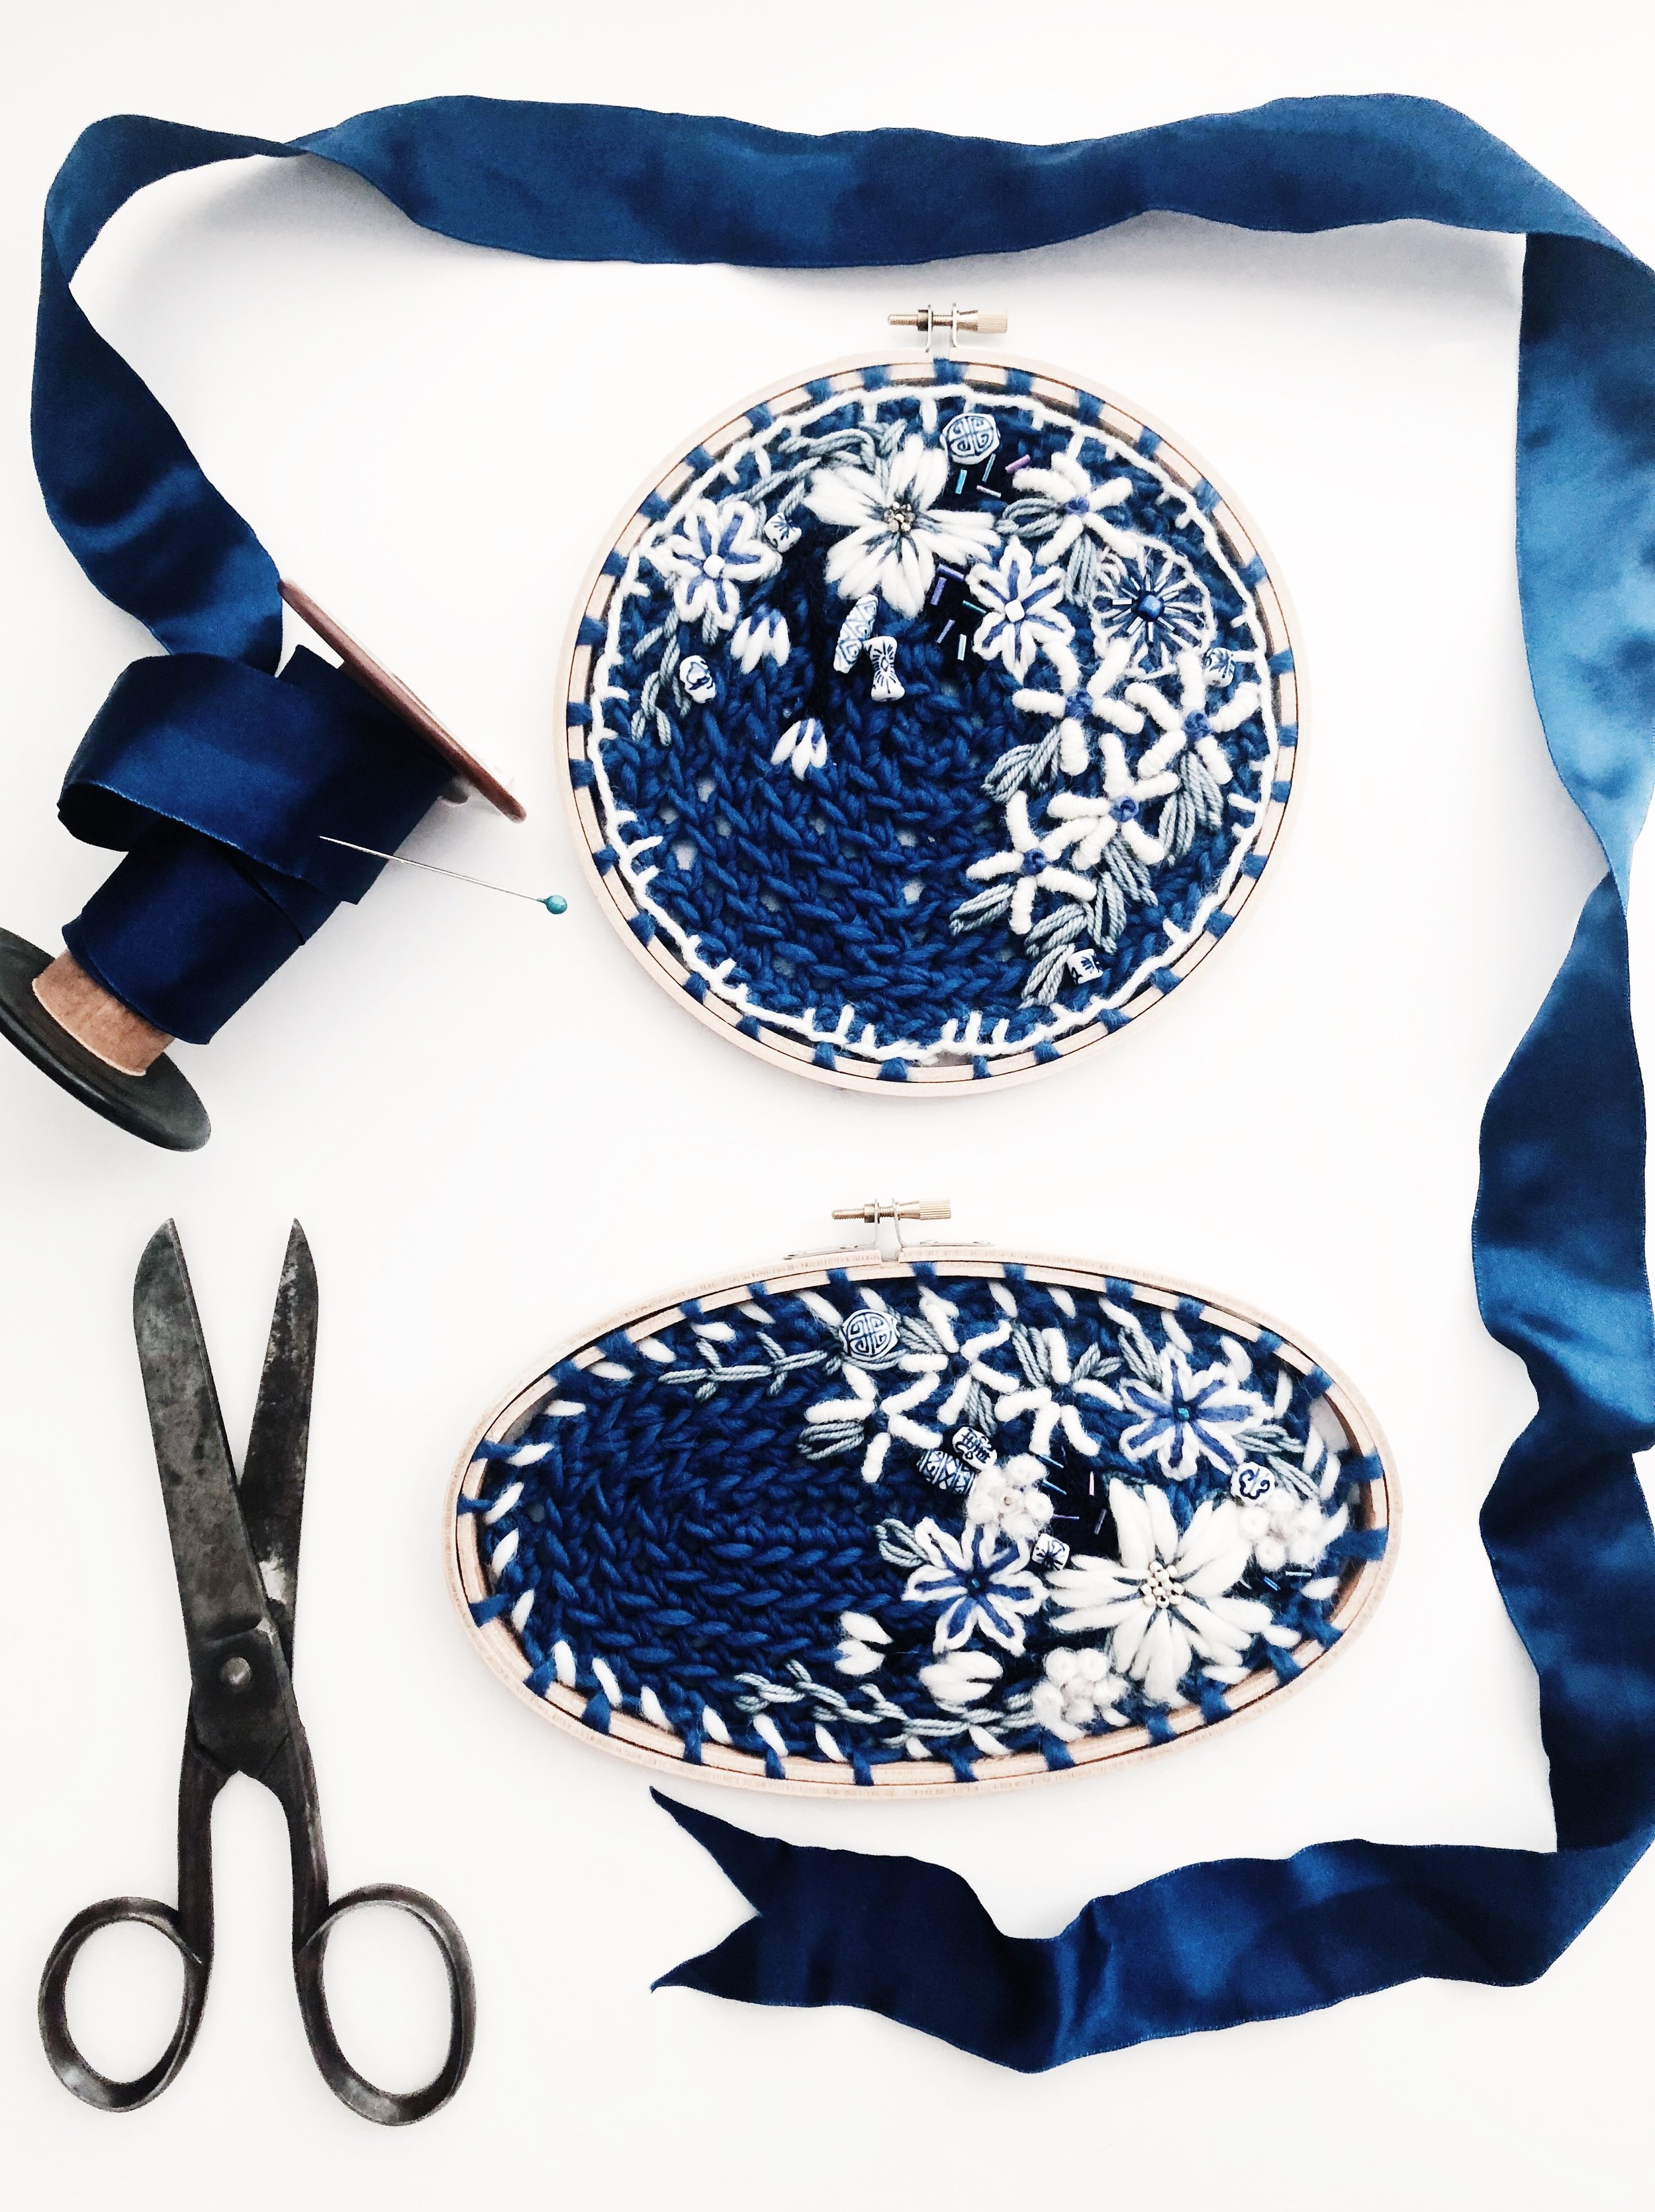 cobalt-blue-oandystudio-delft-willow-embroidery-hoop-crewel-tapestry-crochet-pattern-wall-hanging.jpg